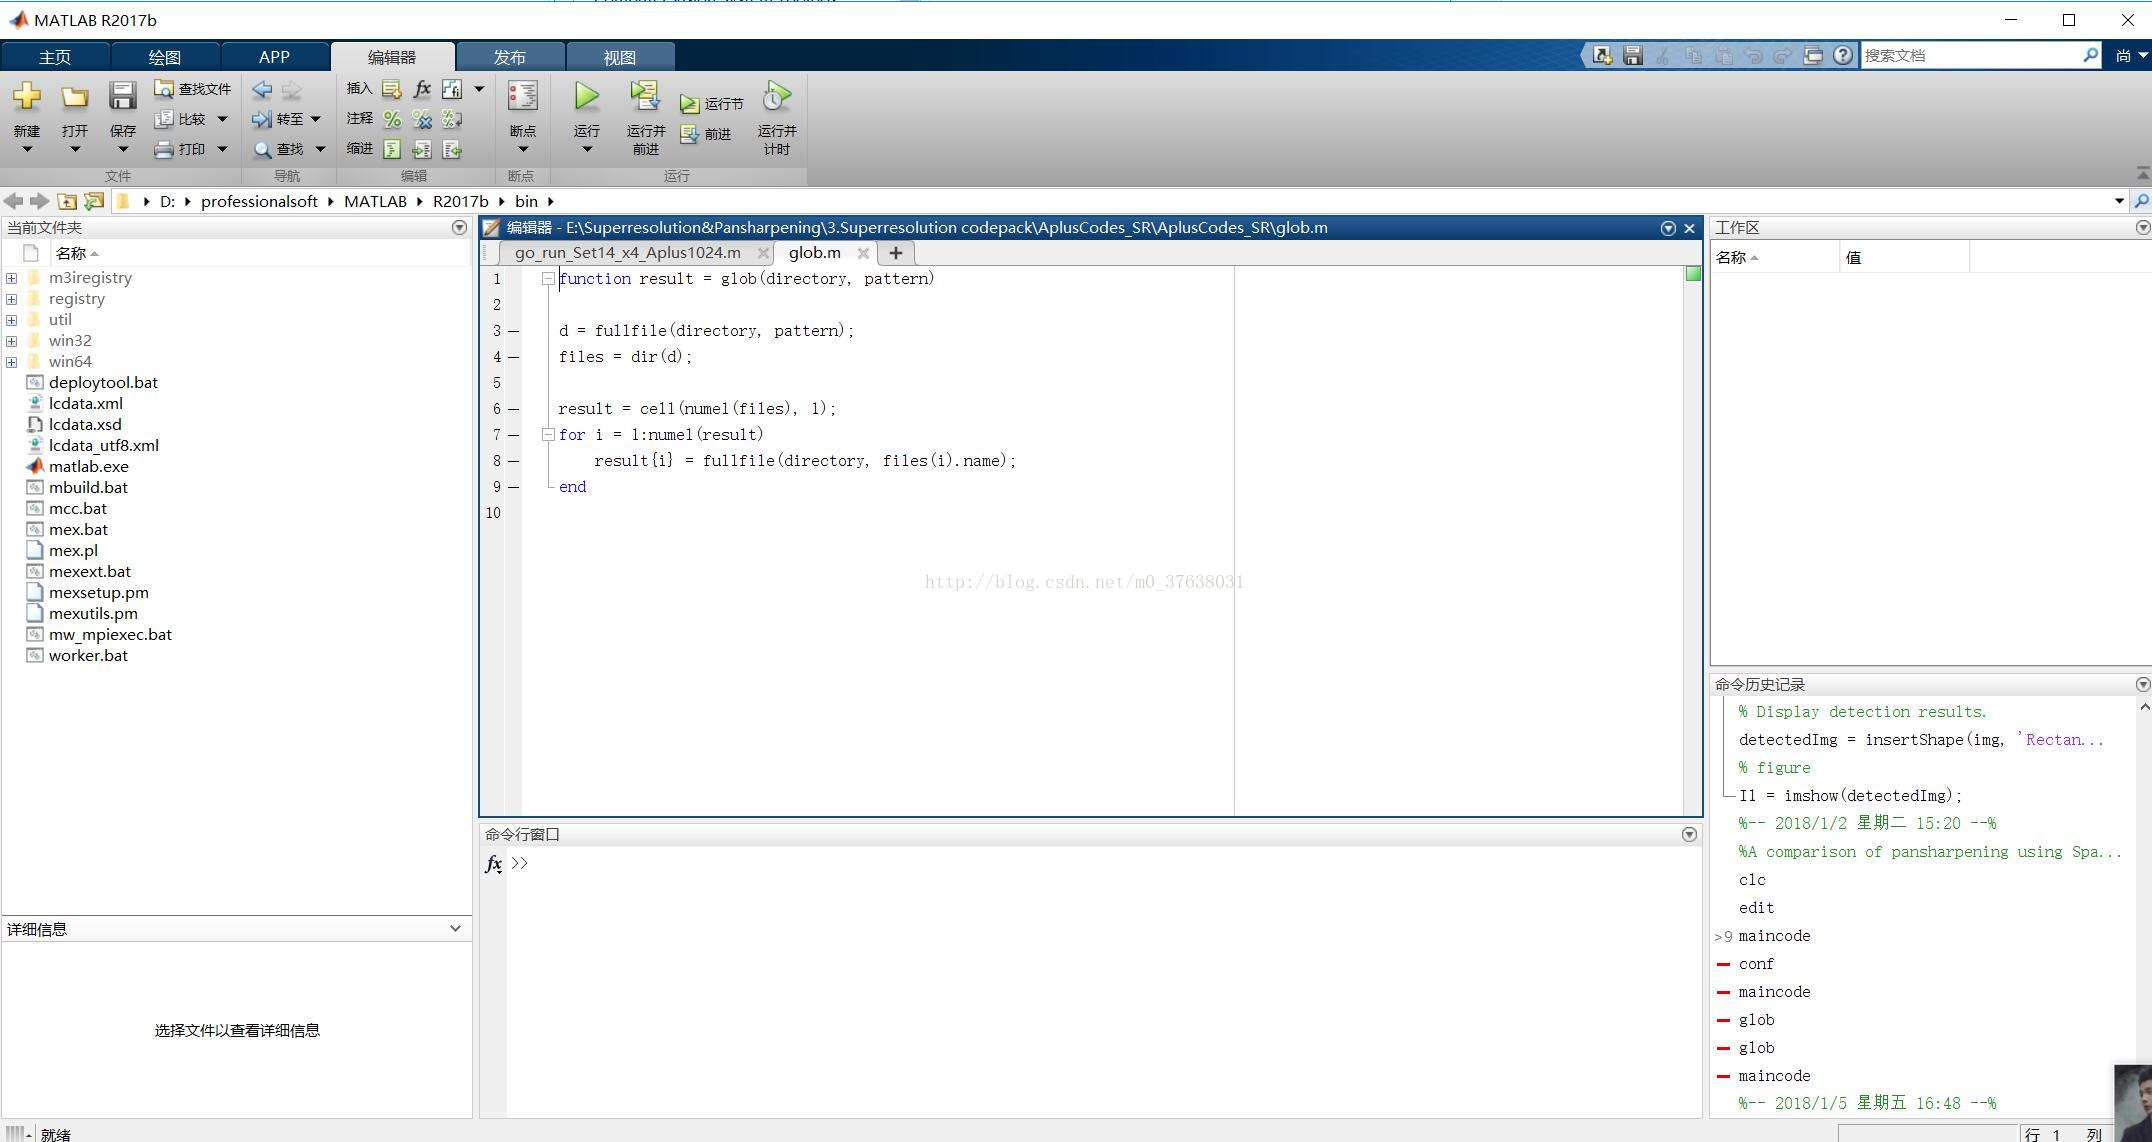 MATLAB R2017b installation and cracking - Programmer Sought